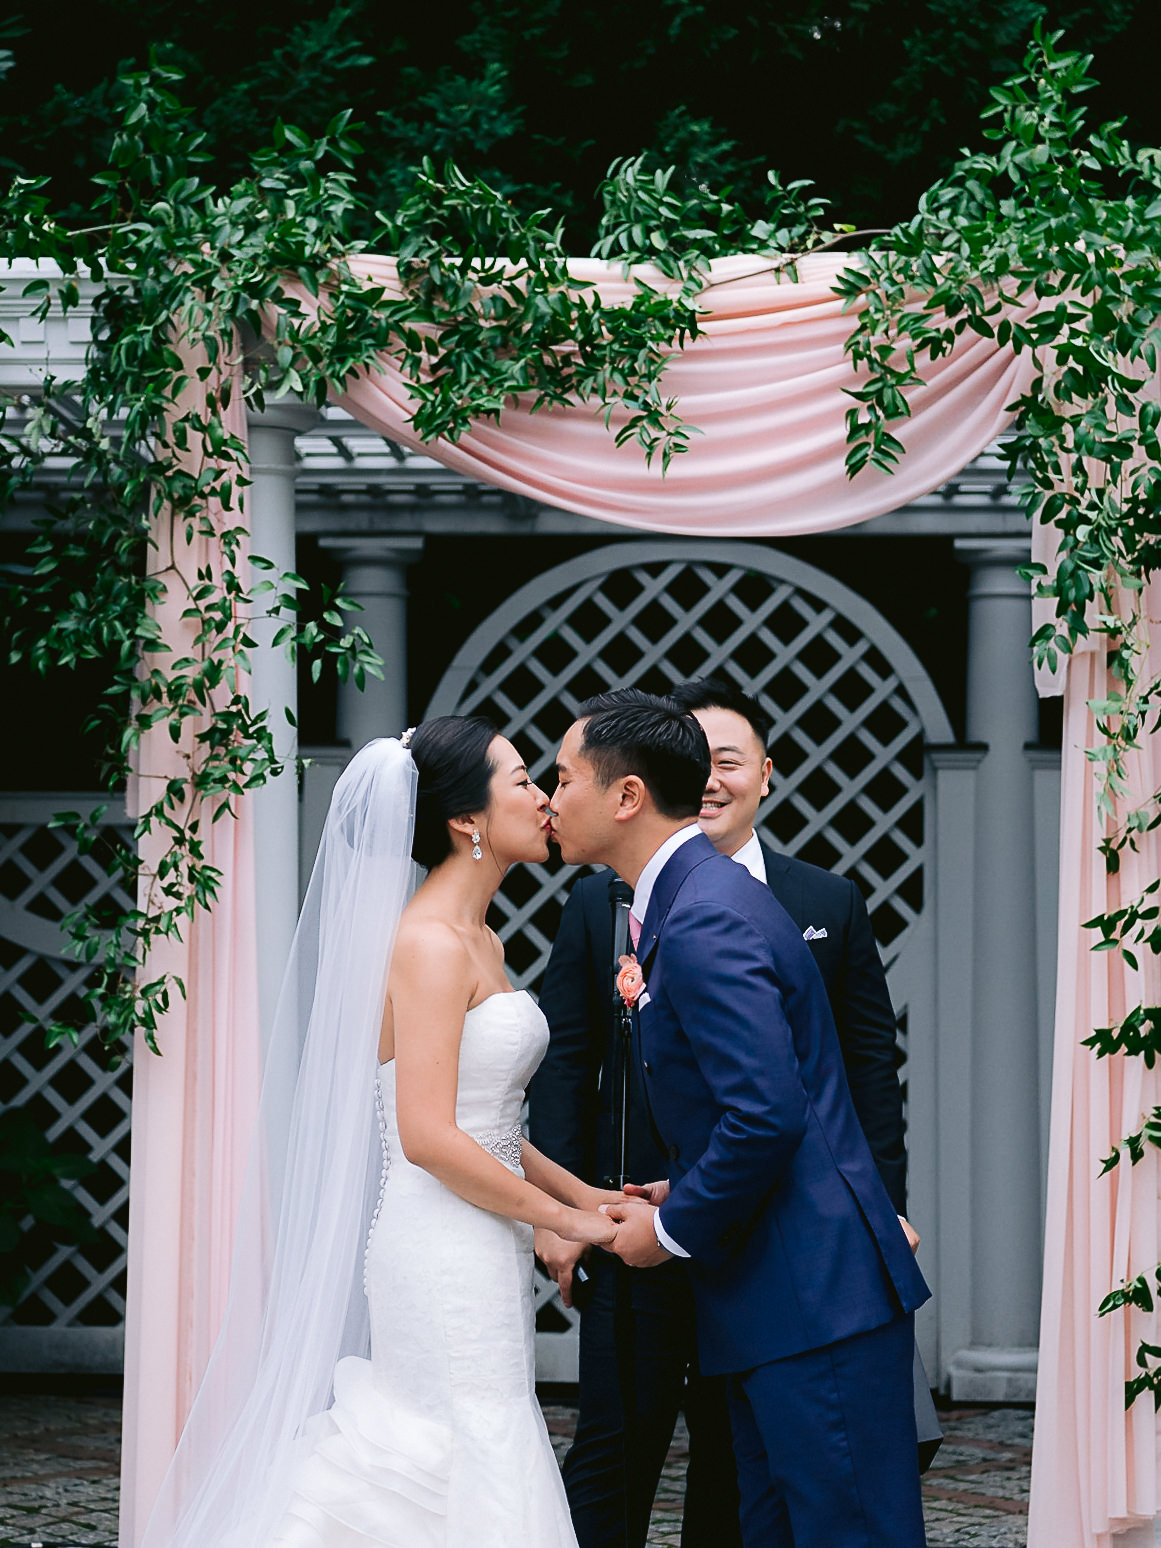 Best-New-York-Botanical-Gardens-Wedding-Photographer-123